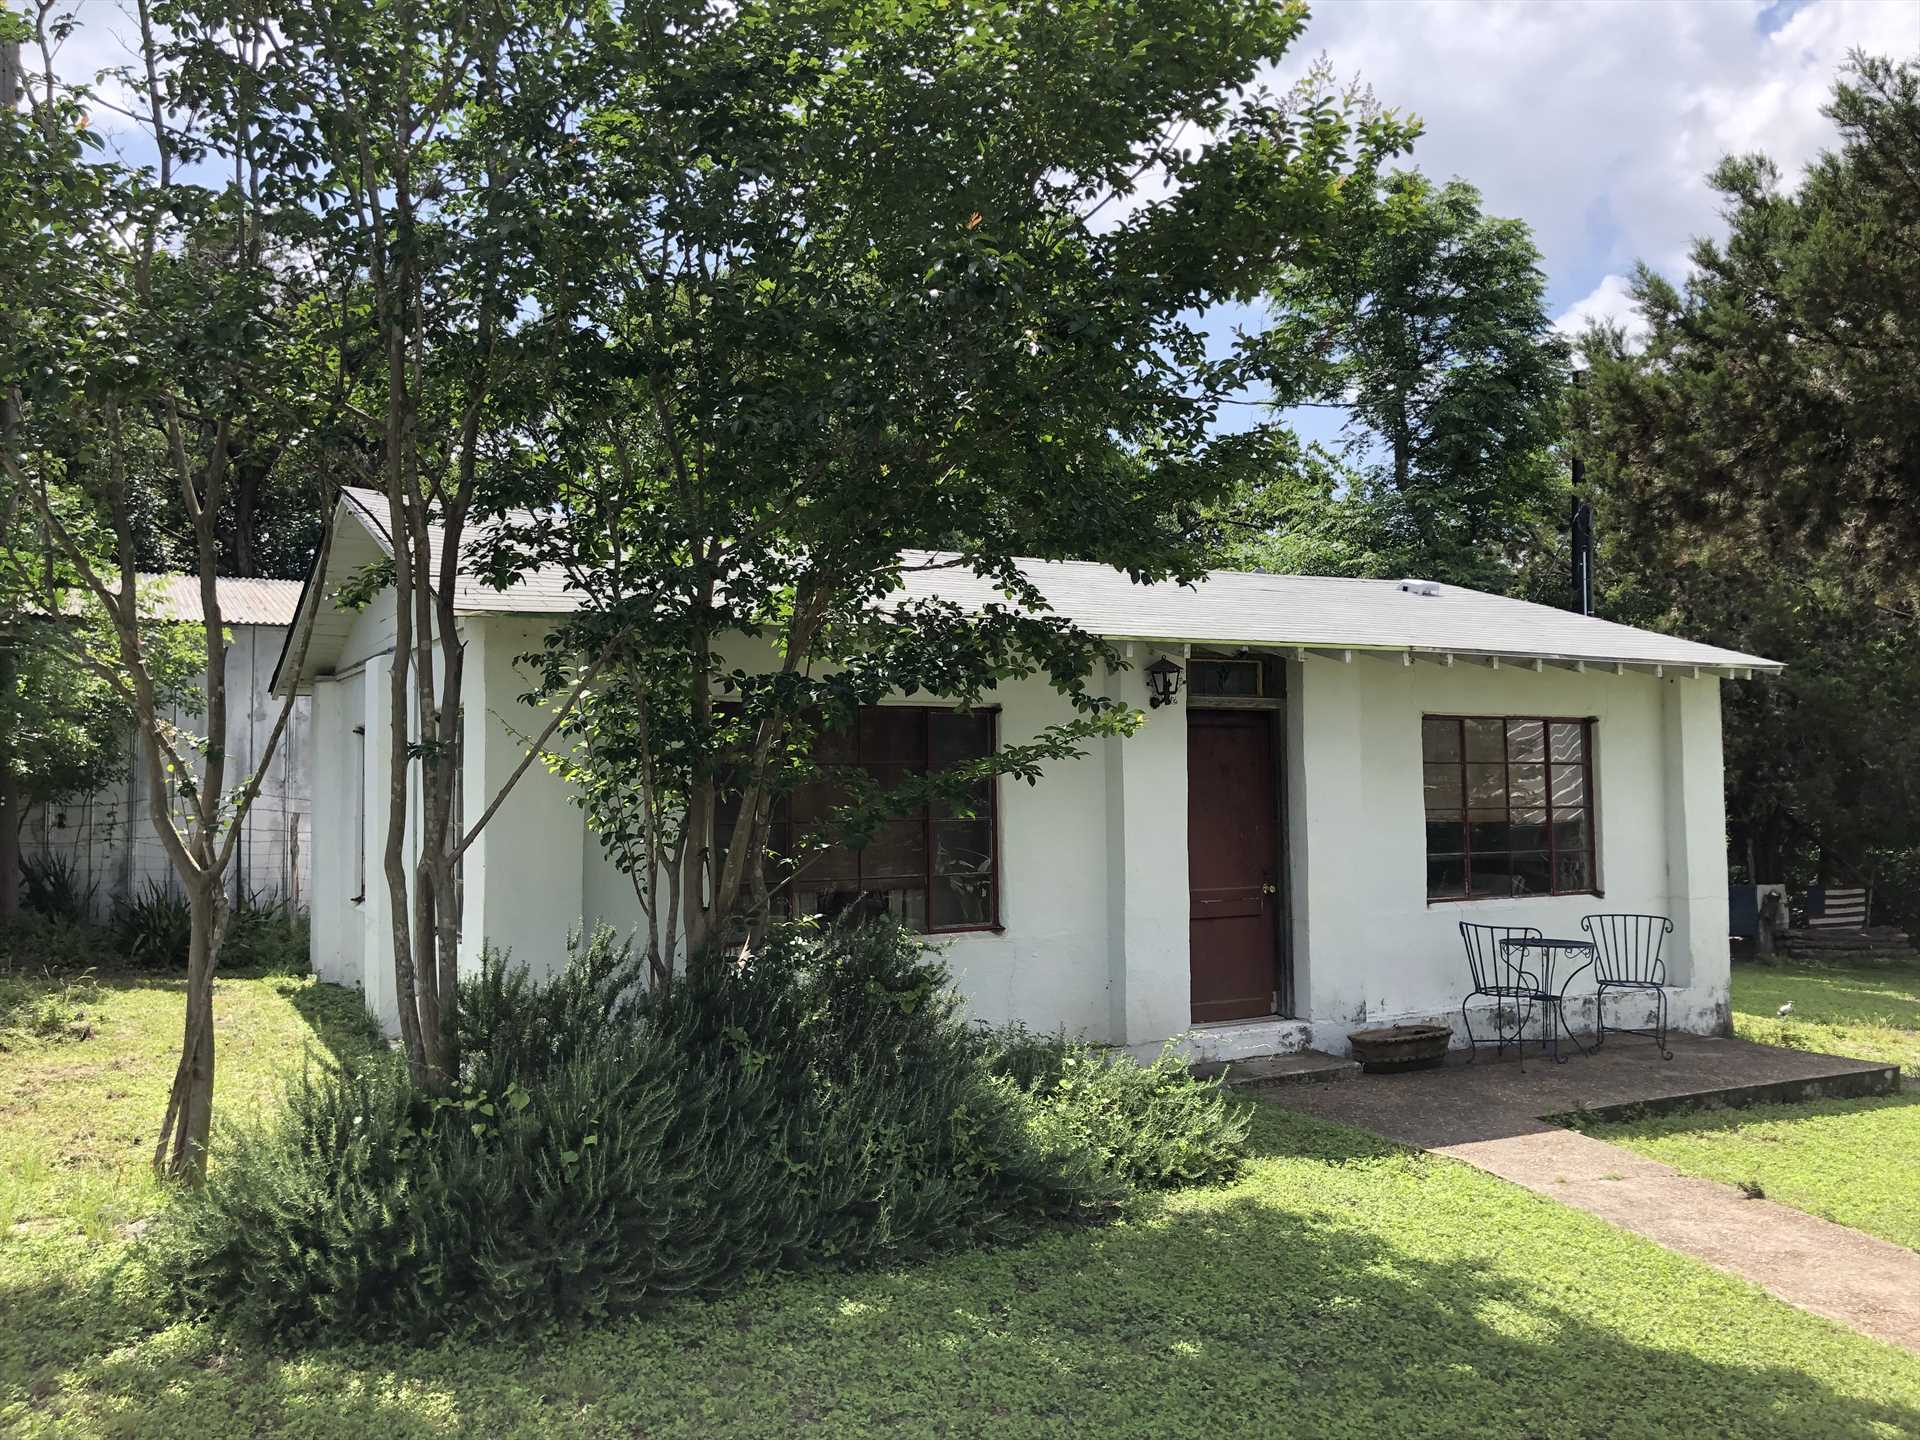 If you've got a couple who'd like to come along, but would like a more private setting, ask us about renting the Casita on the grounds.